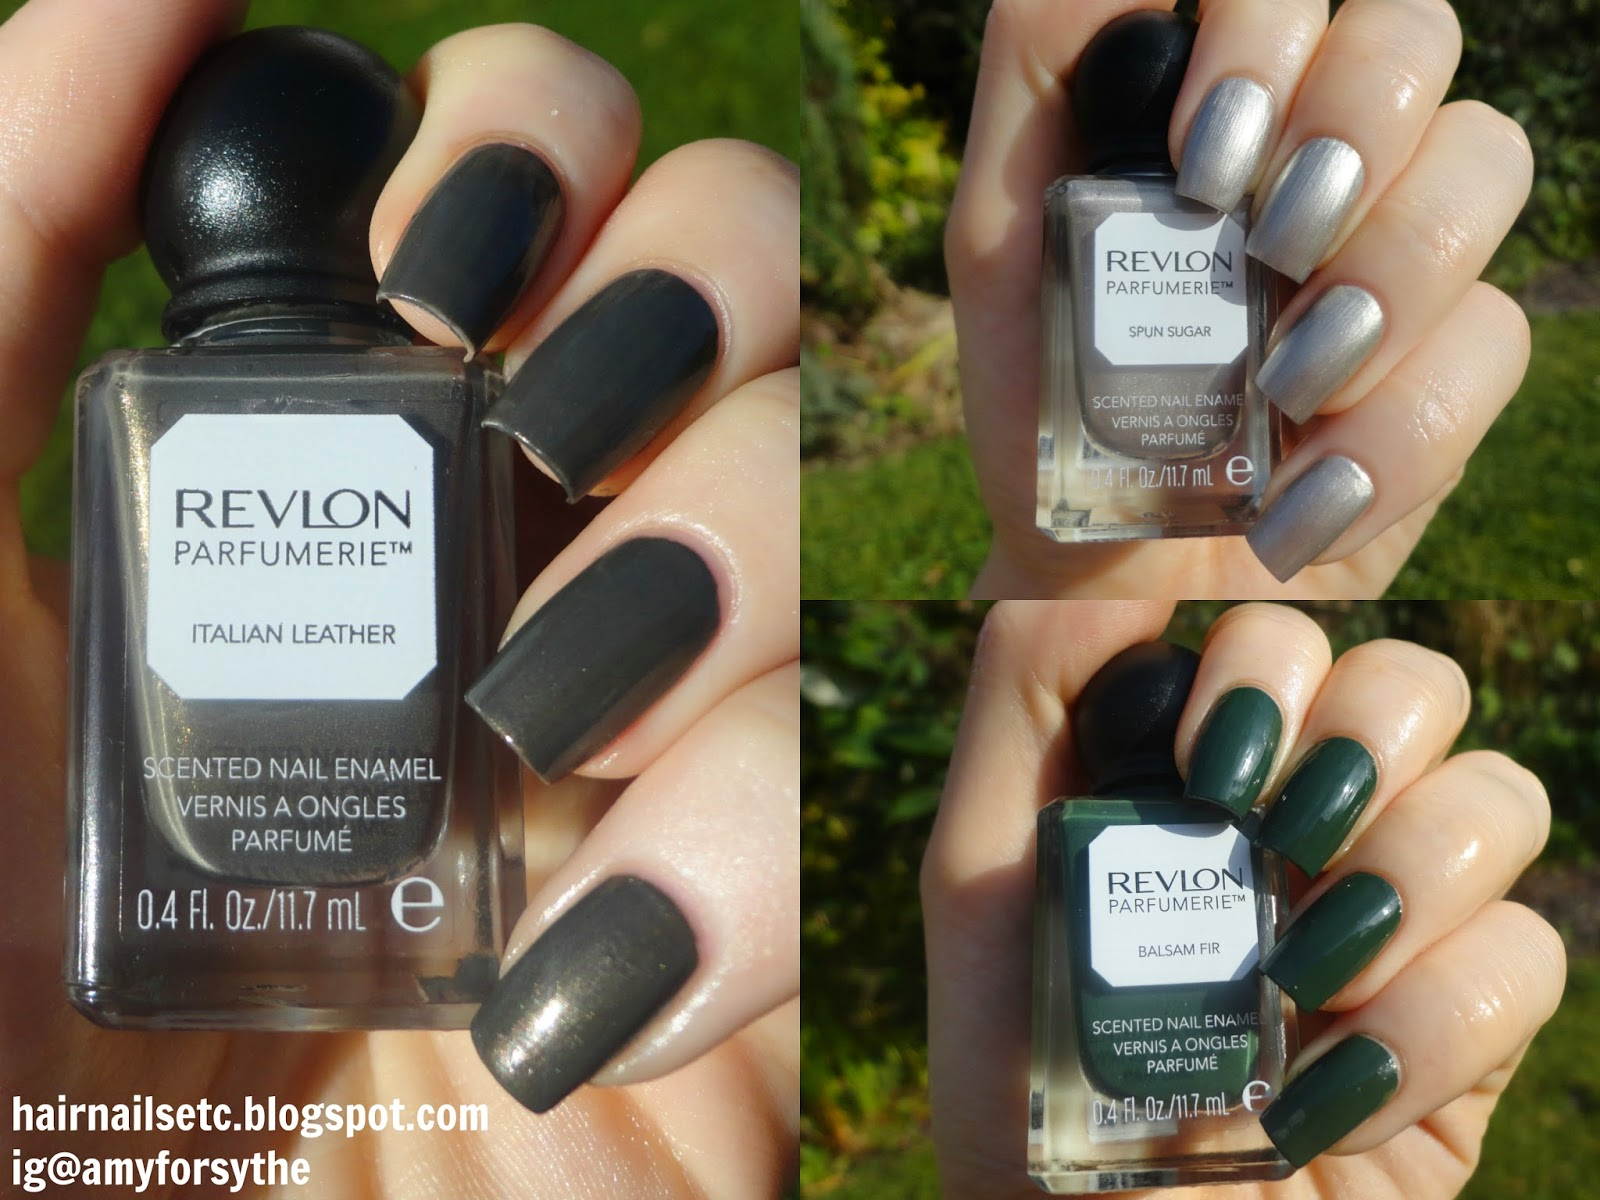 Swatch and review of Revlon Parfumerie Nail Enamel Varnish Polish in Italian Leather, Spun Sugar and Balsam Fir